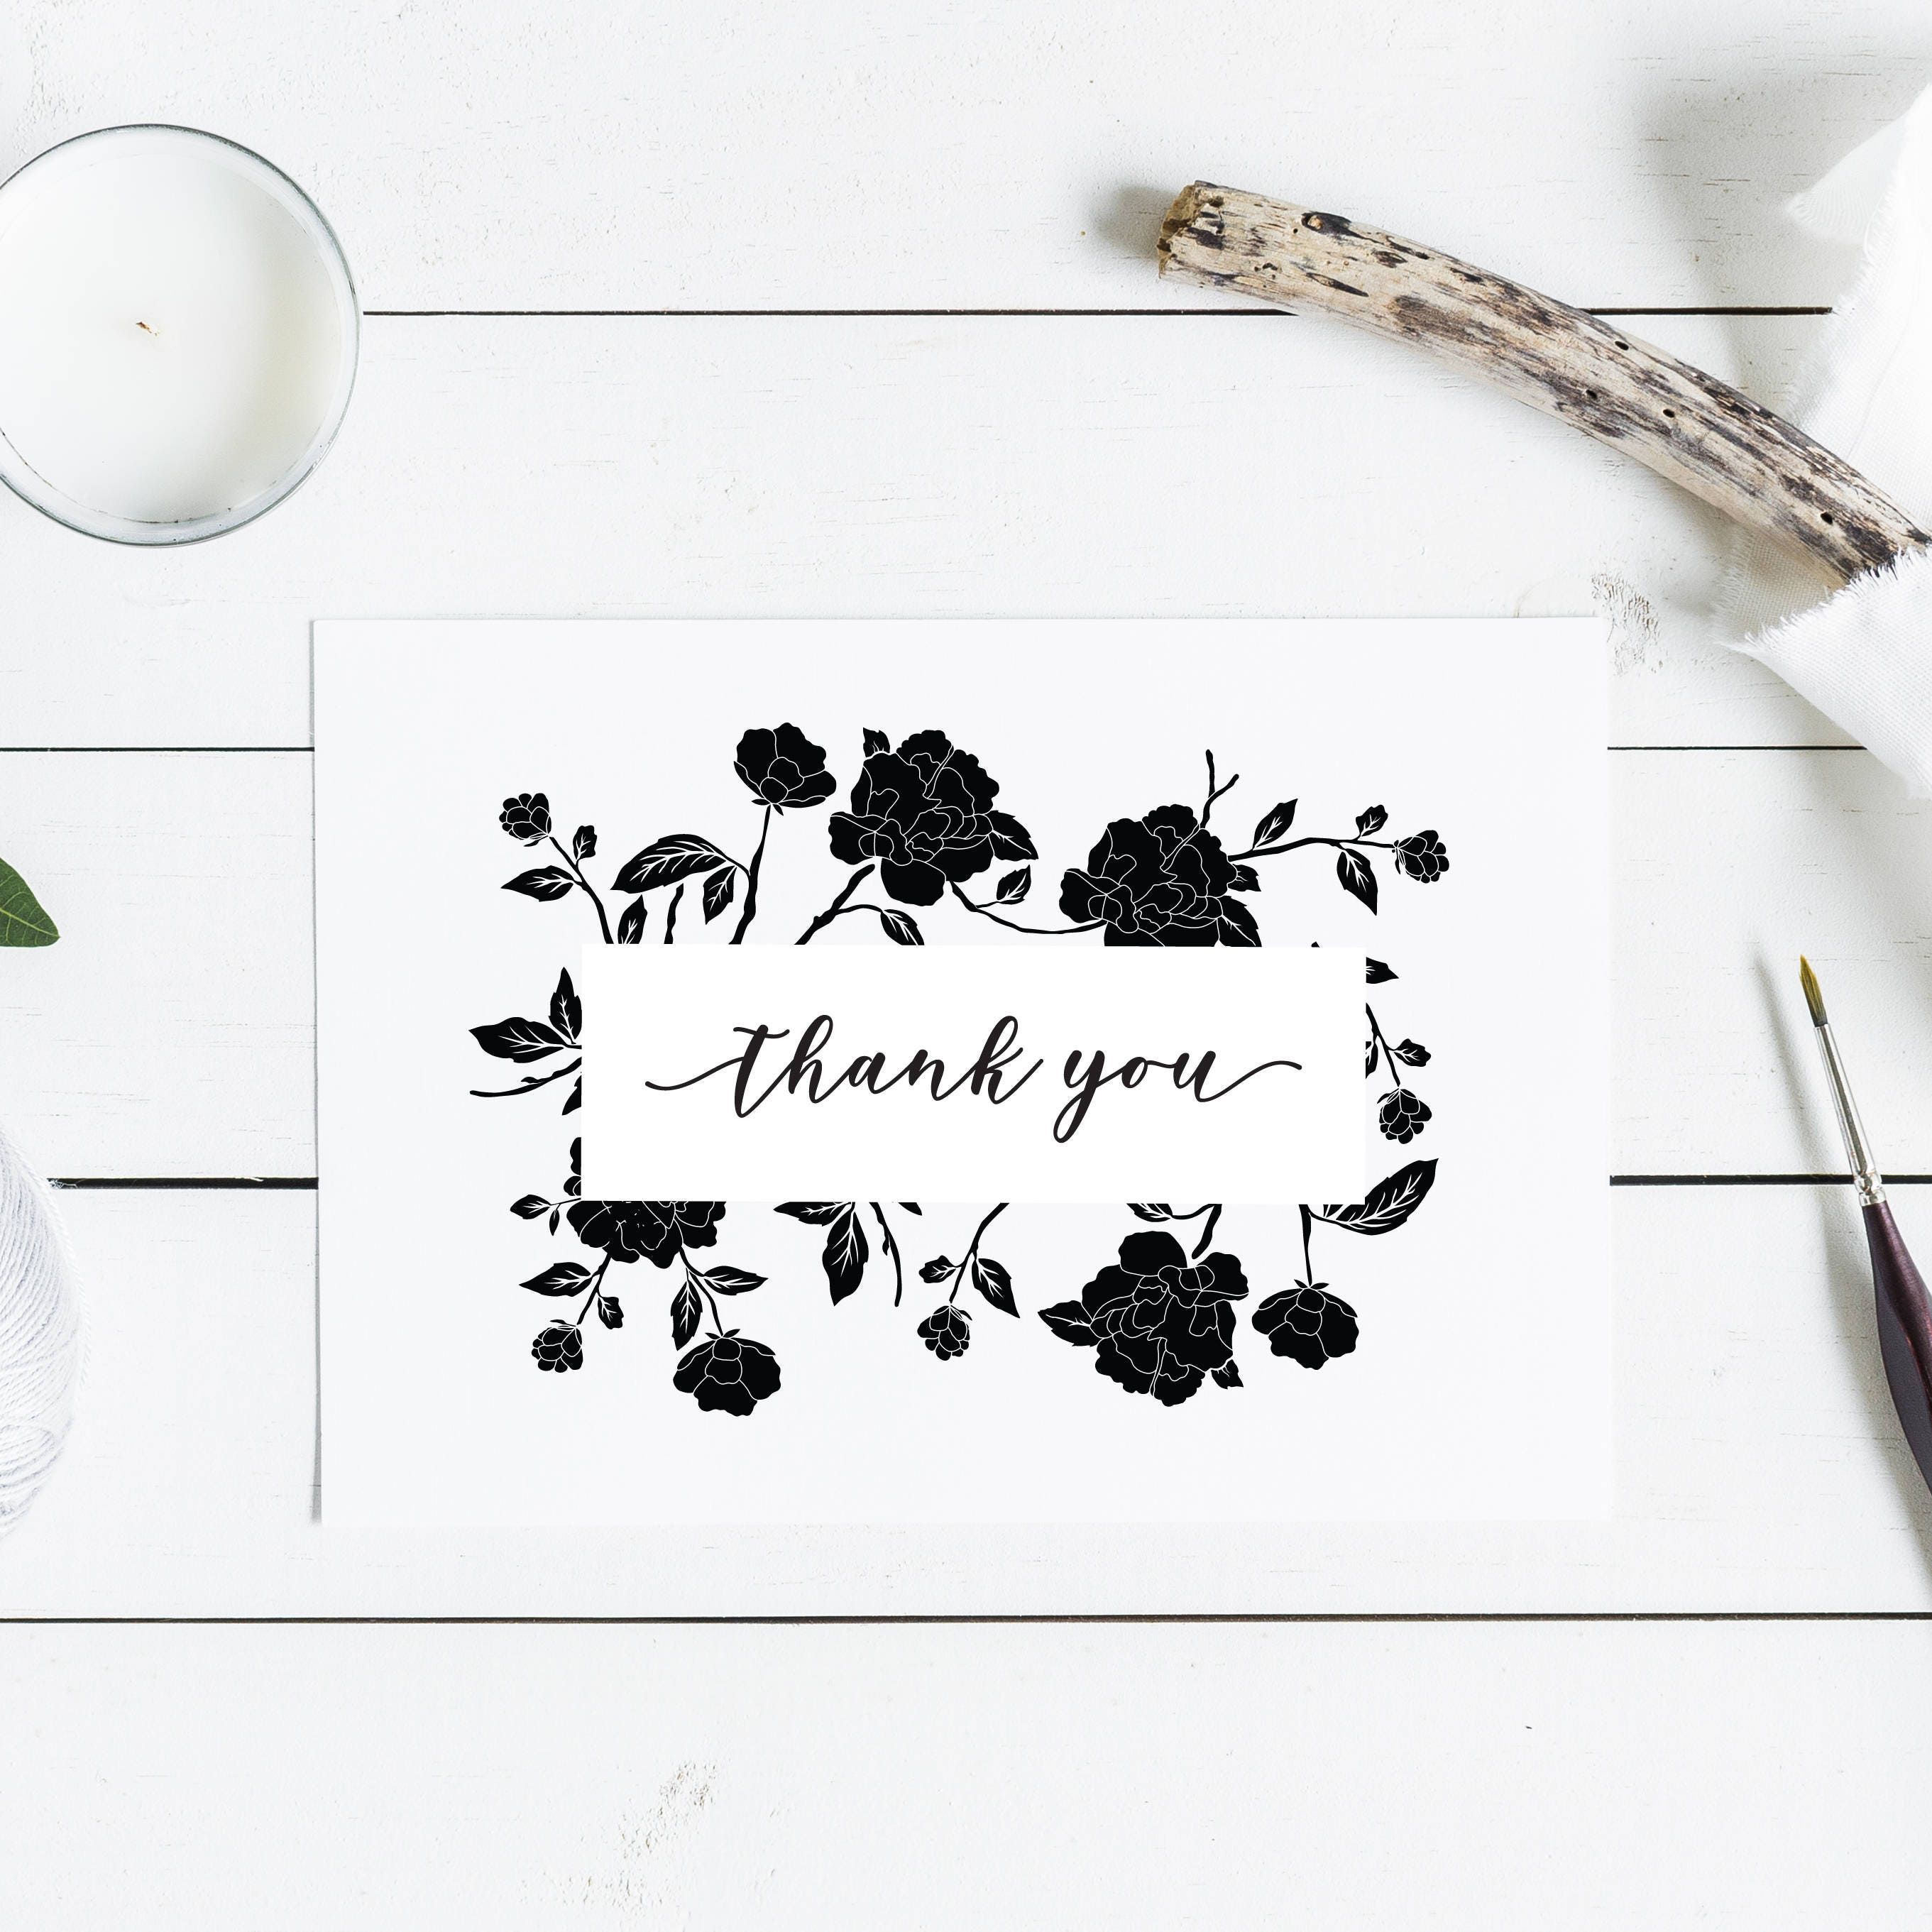 Thank you card thanks greeting for her baby shower wedding thank you card thanks greeting for her baby shower wedding marriage new homeowners job graduation kristyandbryce Images